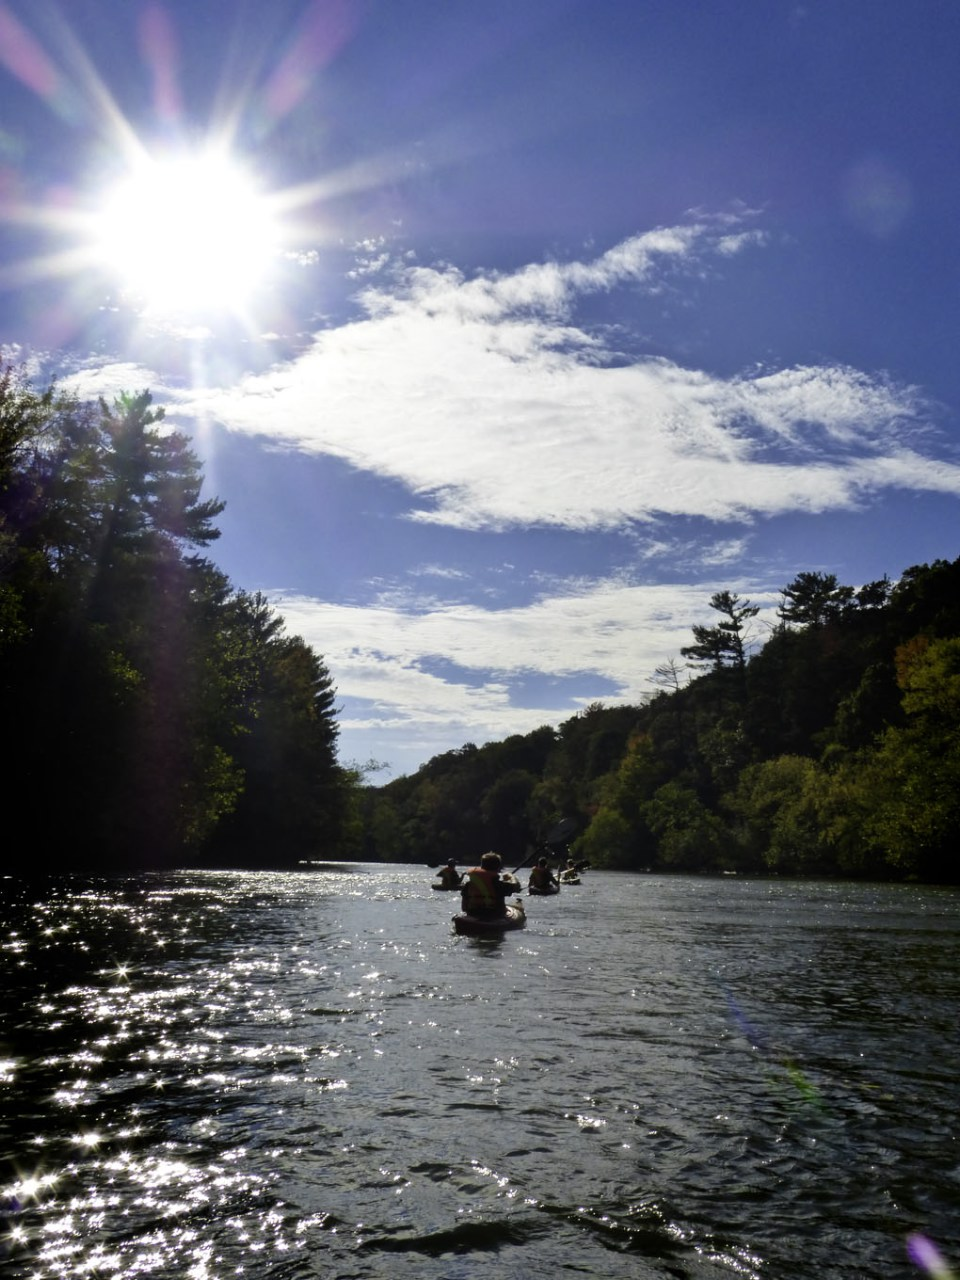 Kayaking Down the Eau Claire River - By: Kaitlyn Bryan/Volume One